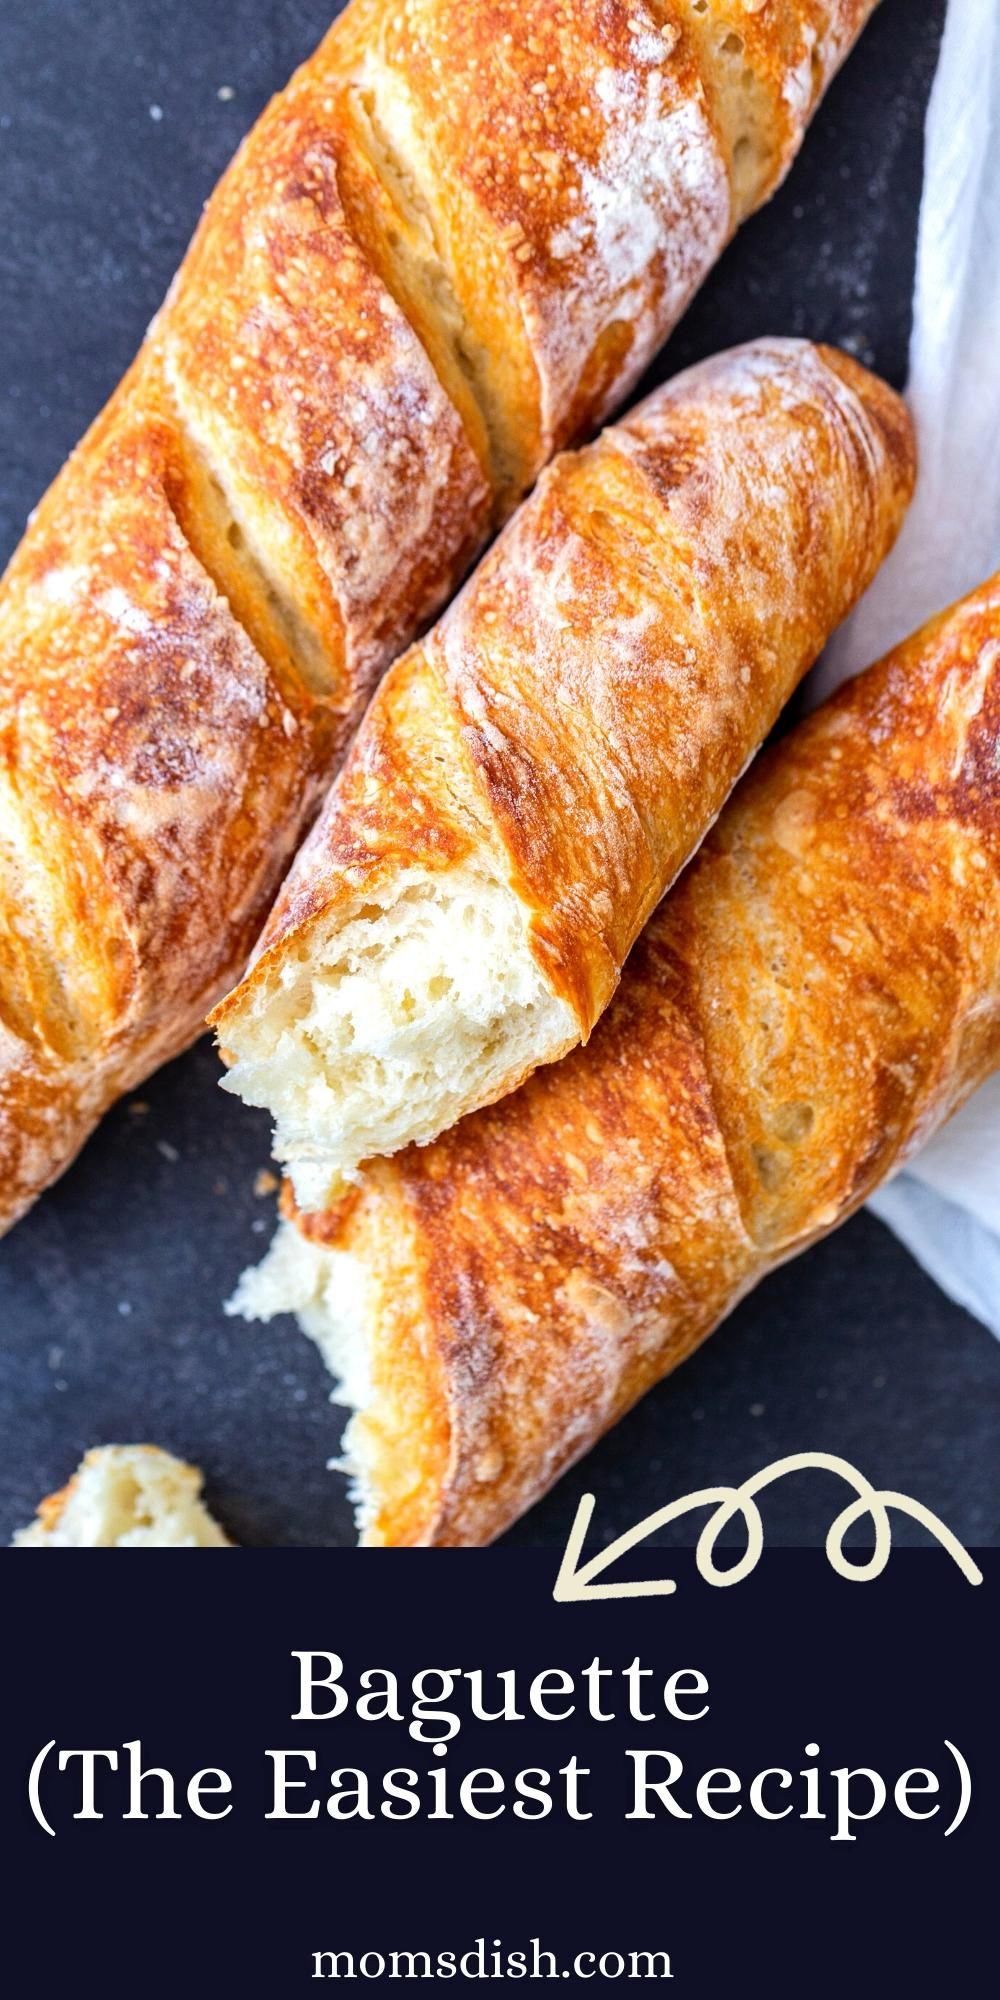 Baguette (The Easiest Recipe)